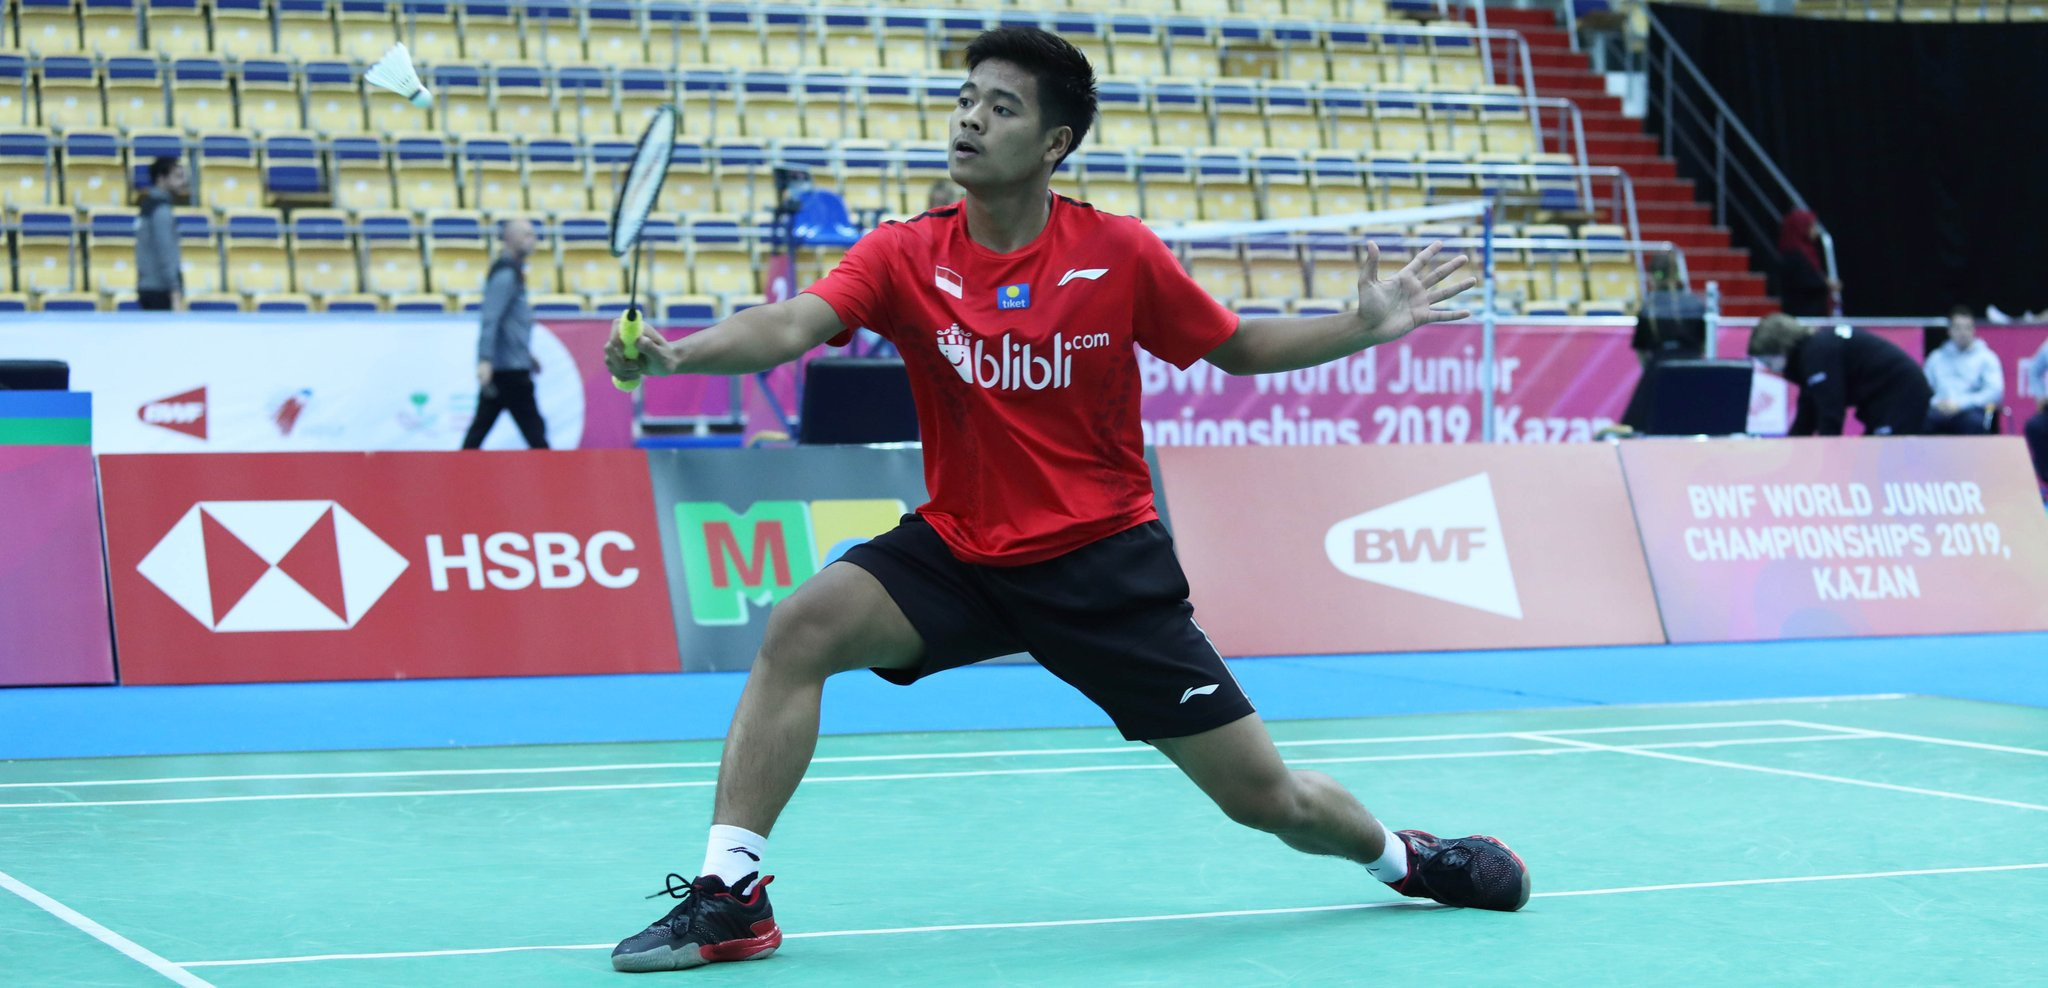 The Indonesian Badminton Association (PBSI) also await a decision from the Badminton World Federation (BWF) who are set to decide their Olympic qualification method ahead of next year's Games ©Getty Images